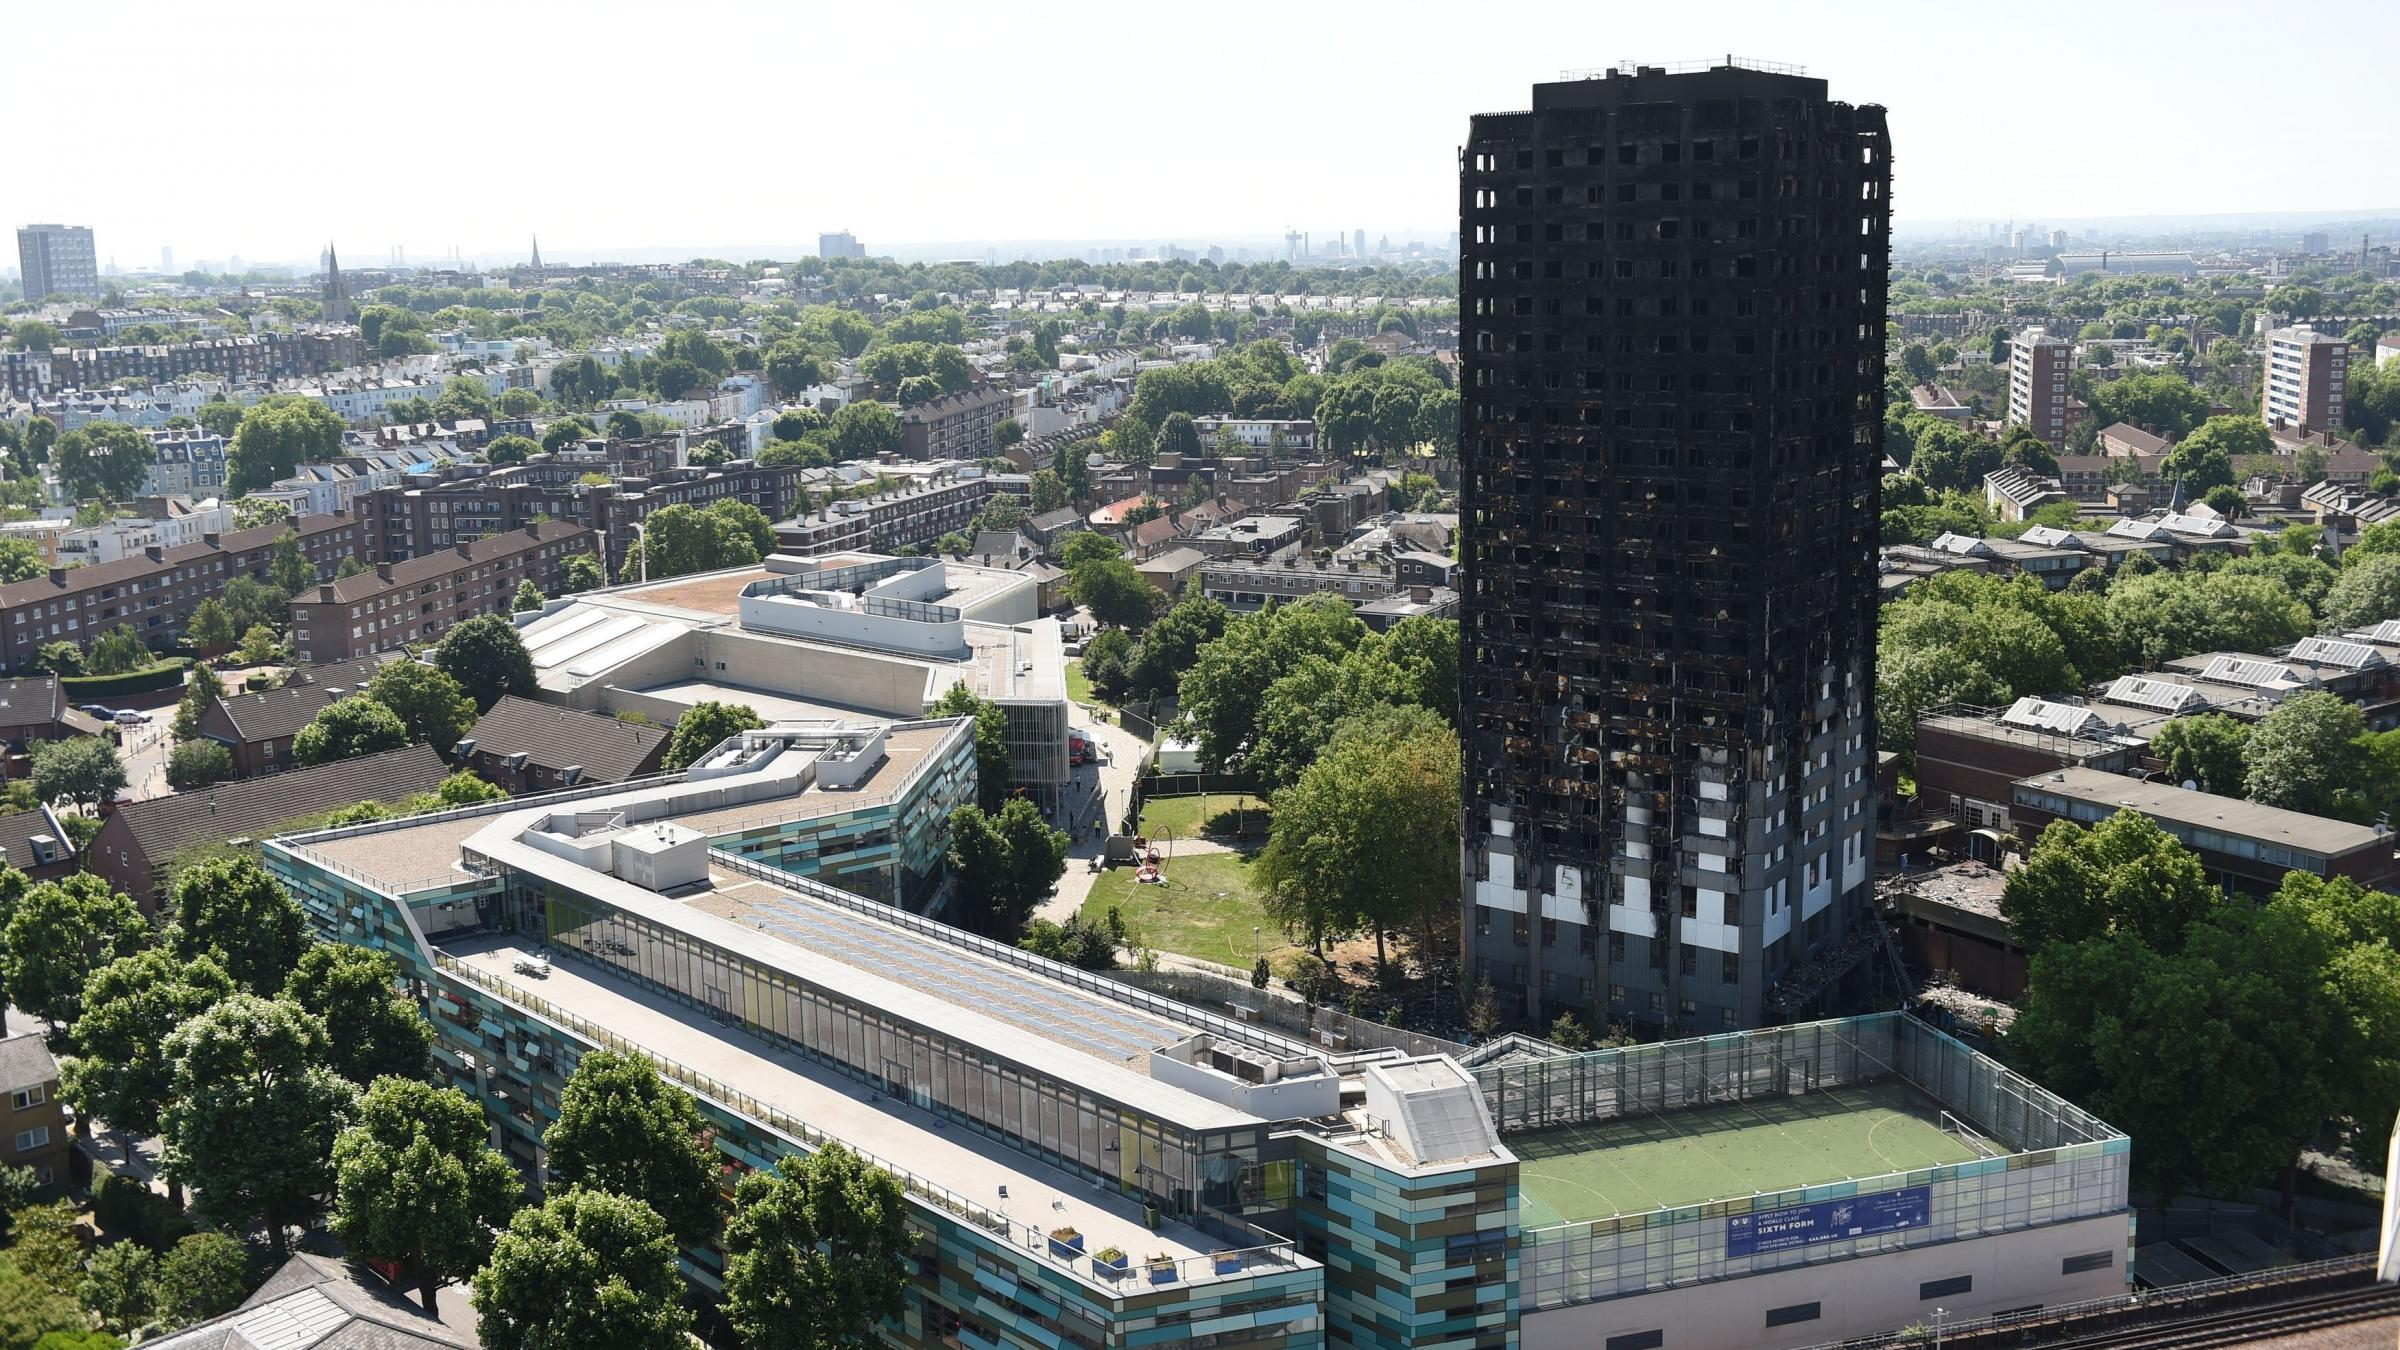 Grenfell Tower recovery efforts ongoing with death toll expected to rise steeply